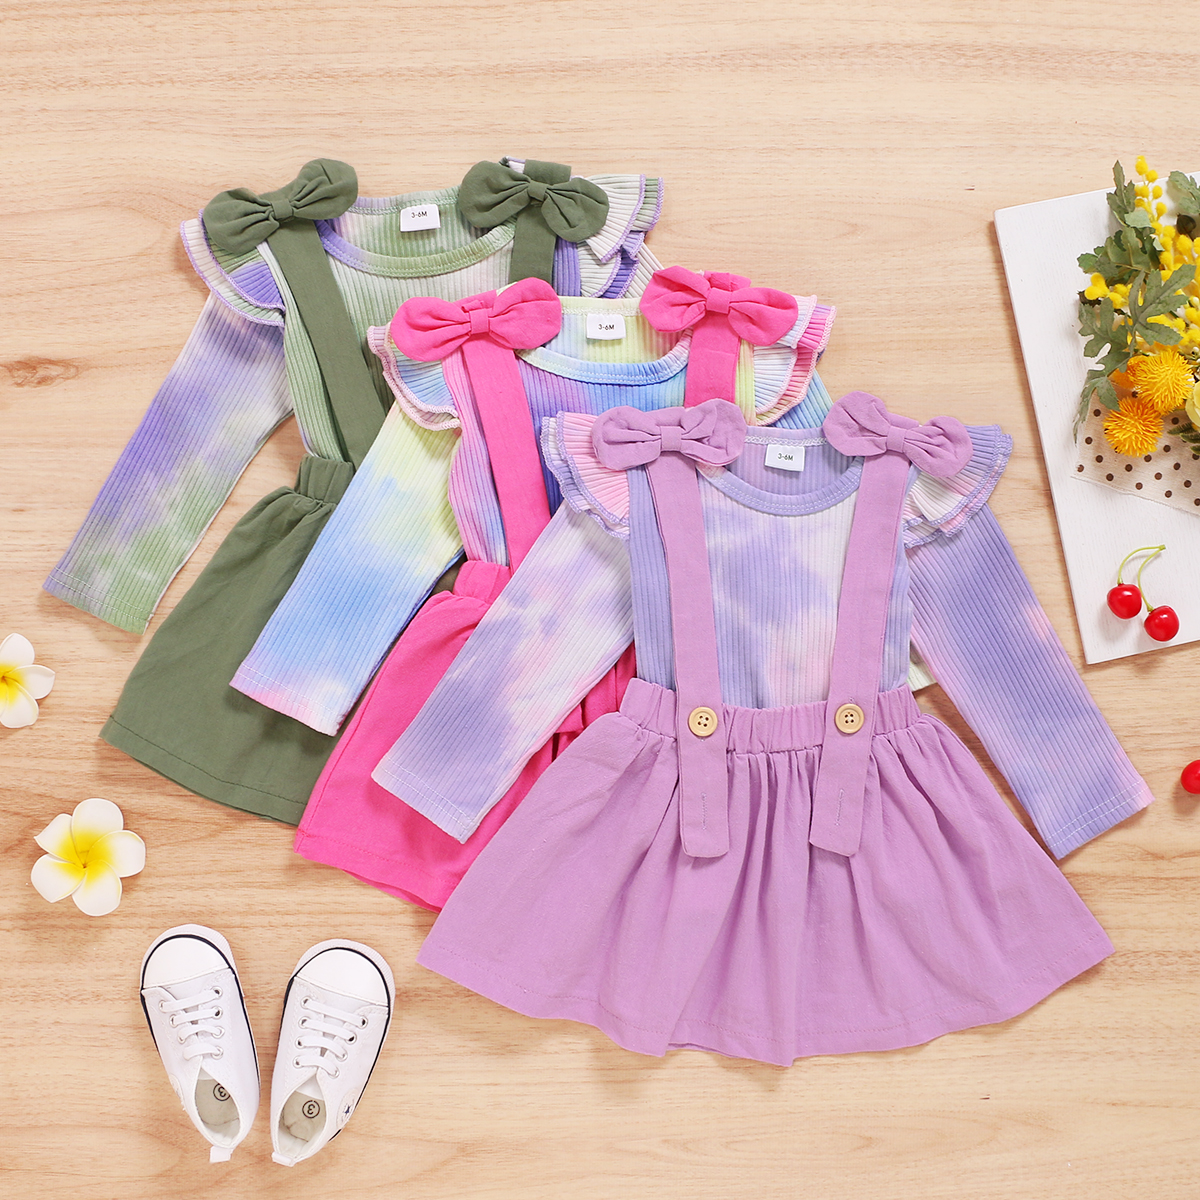 2Pcs Baby Autumn Outfits, Tie-Dyed O-Neck Ruffle Sleeves Top + Suspenders Skirt with Bowknot Suit for Infant Baby Toddler Girls